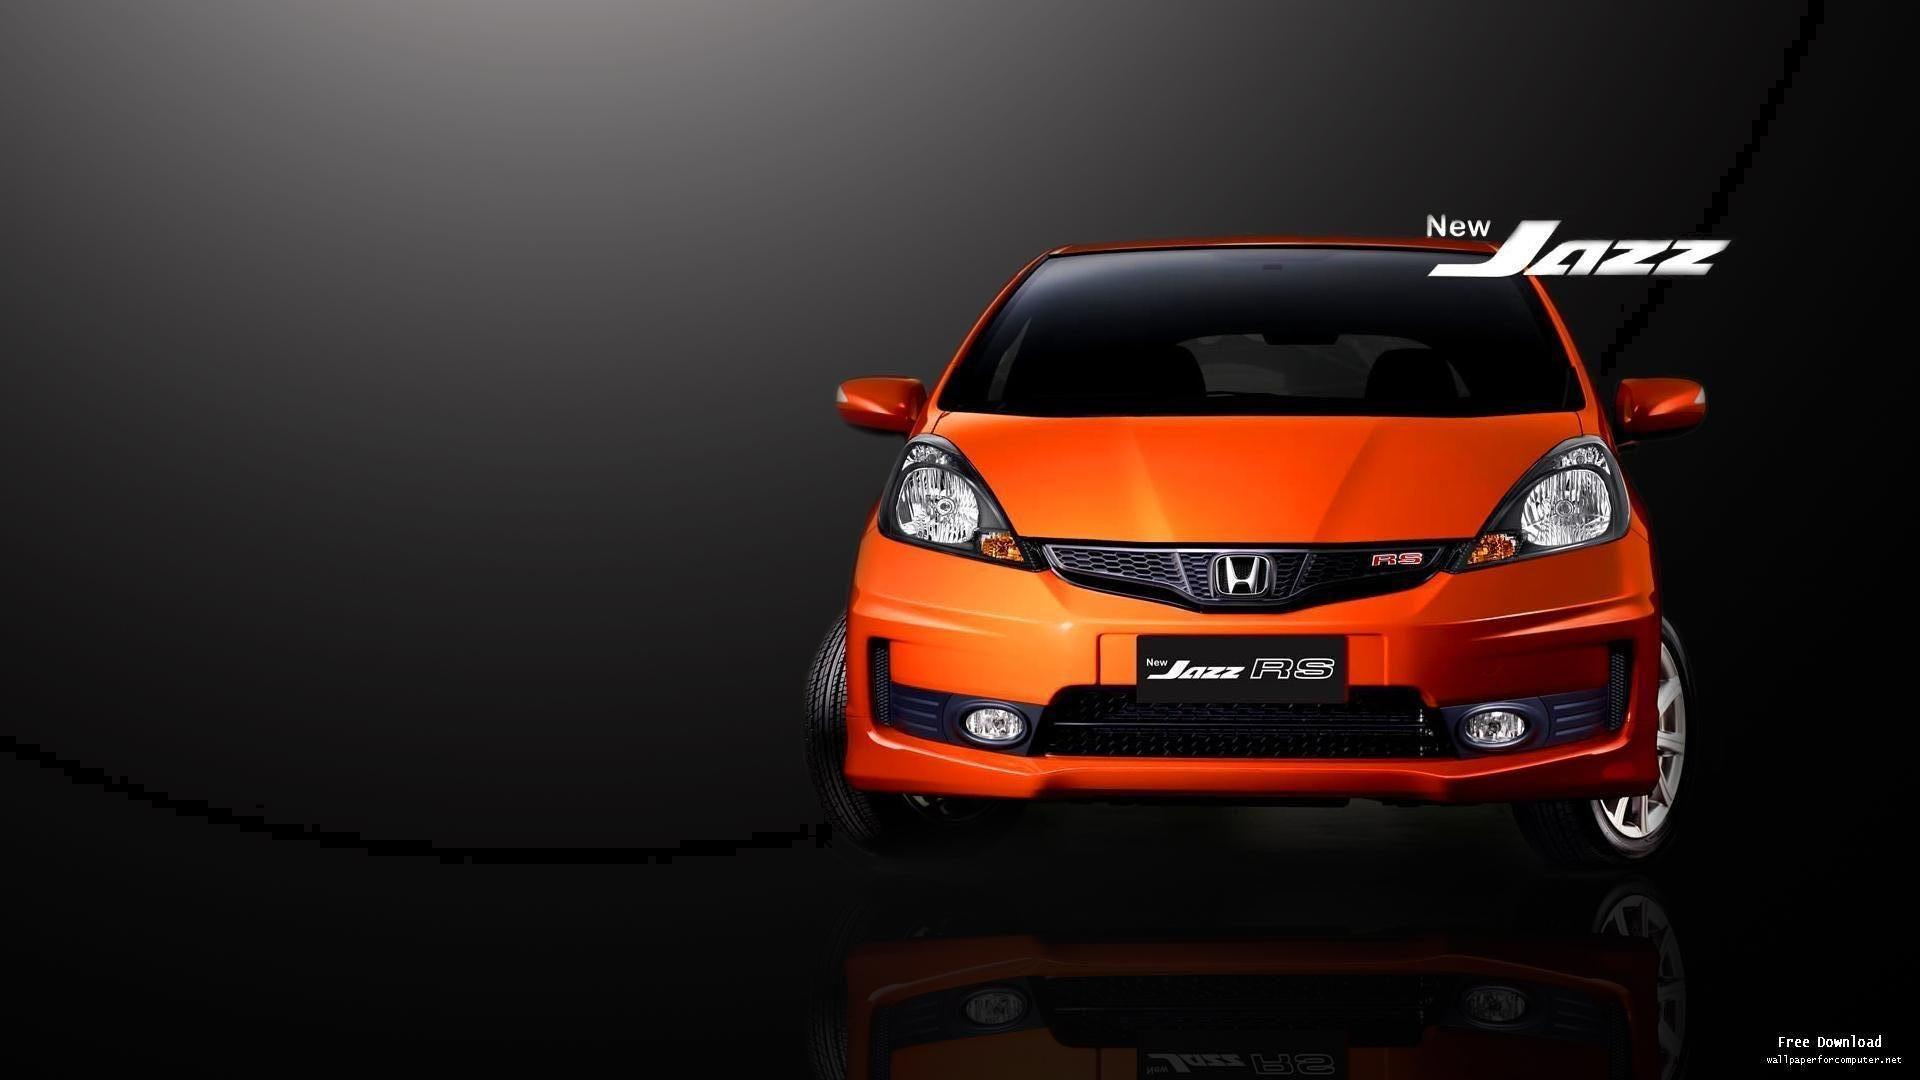 Honda jazz wallpapers wallpaper cave honda jazz hd wallpapers 17268 freefuncar download voltagebd Image collections